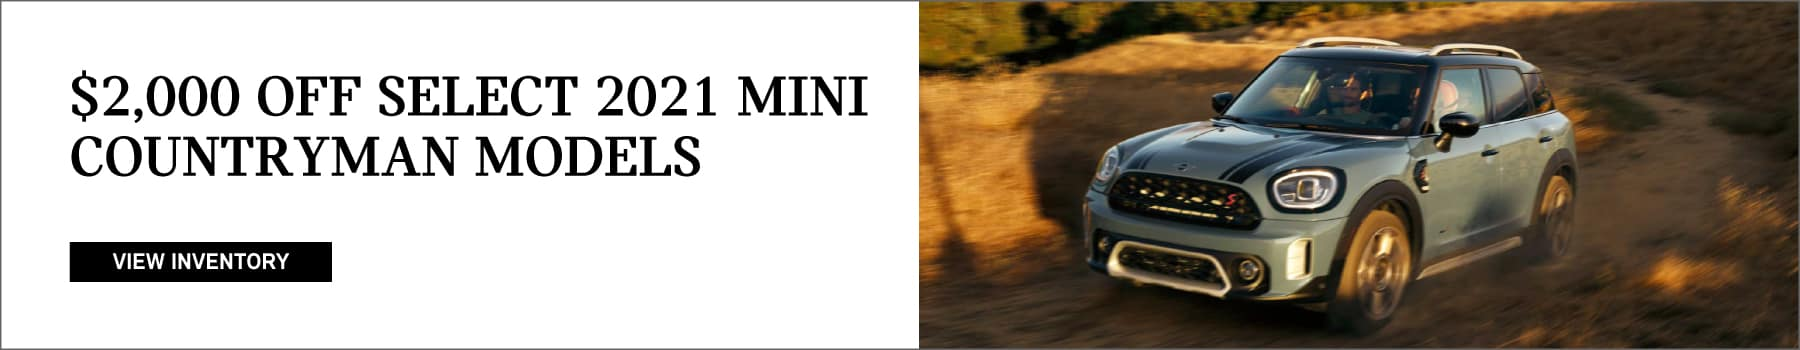 $2,000 off select 2021 MINI countryman models. Click to view inventory. Image shows a 2021 MINI Cooper S Countryman driving down a dirt road at sunset.